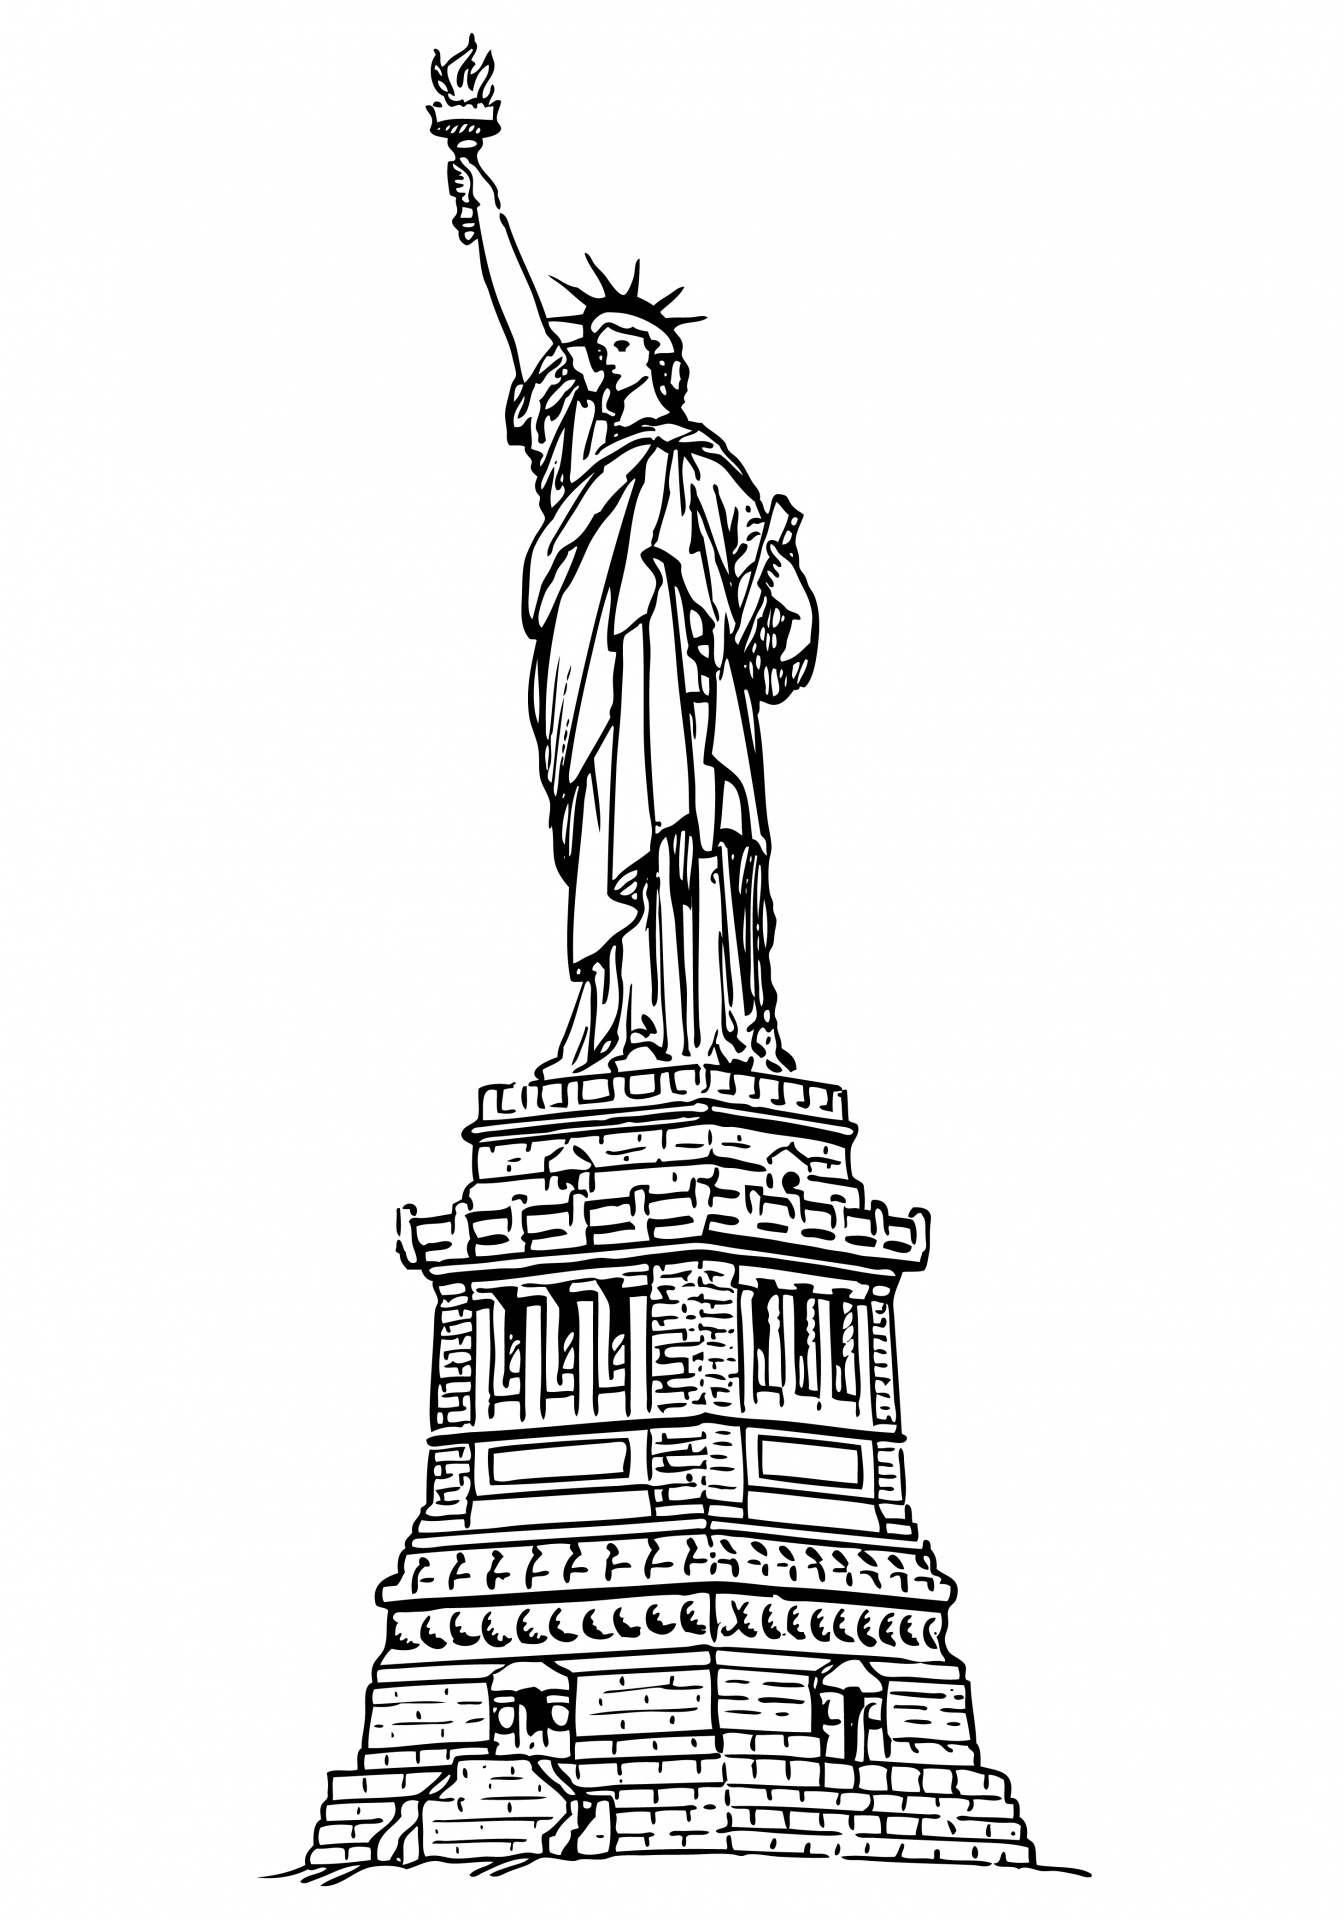 Statue Of Liberty clipart blue Photo Statue Liberty Public Domain